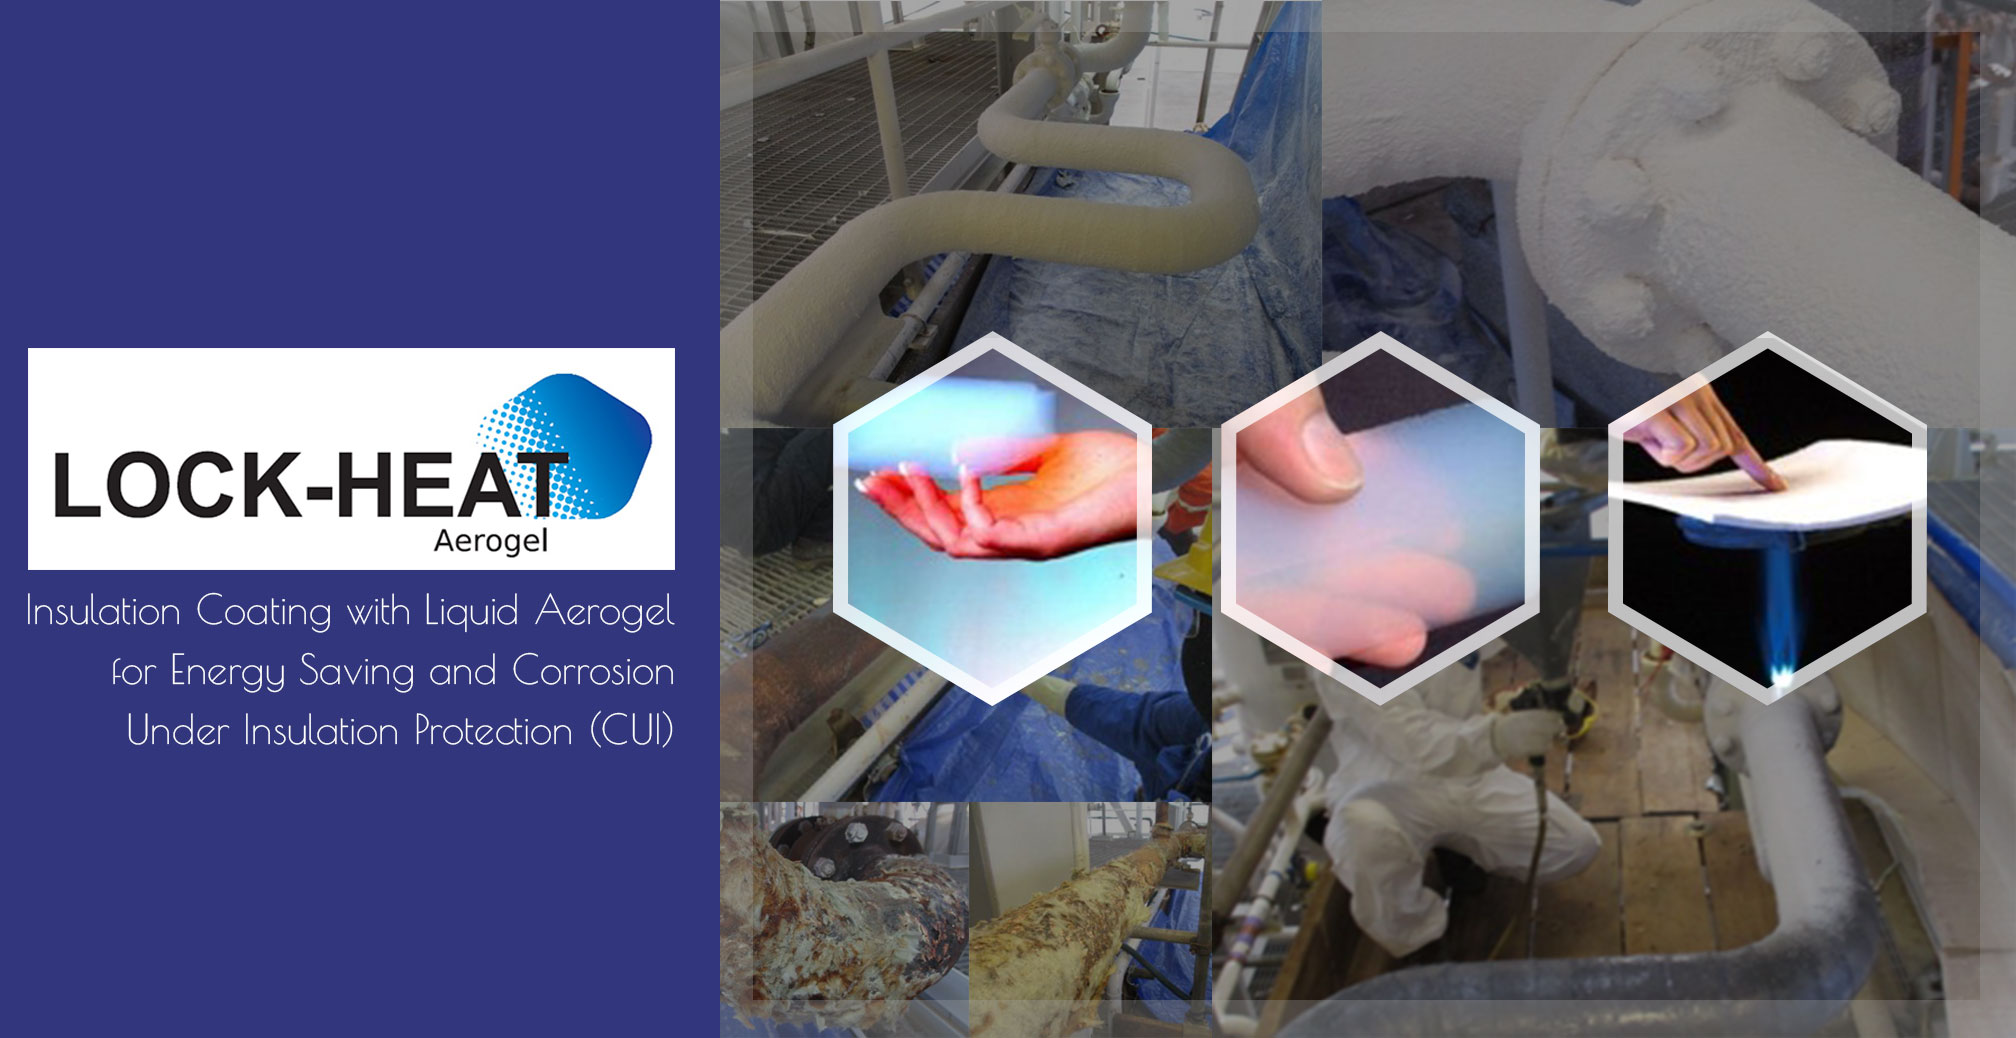 Insulation Coating with Liquid Aerogel for Energy Saving and